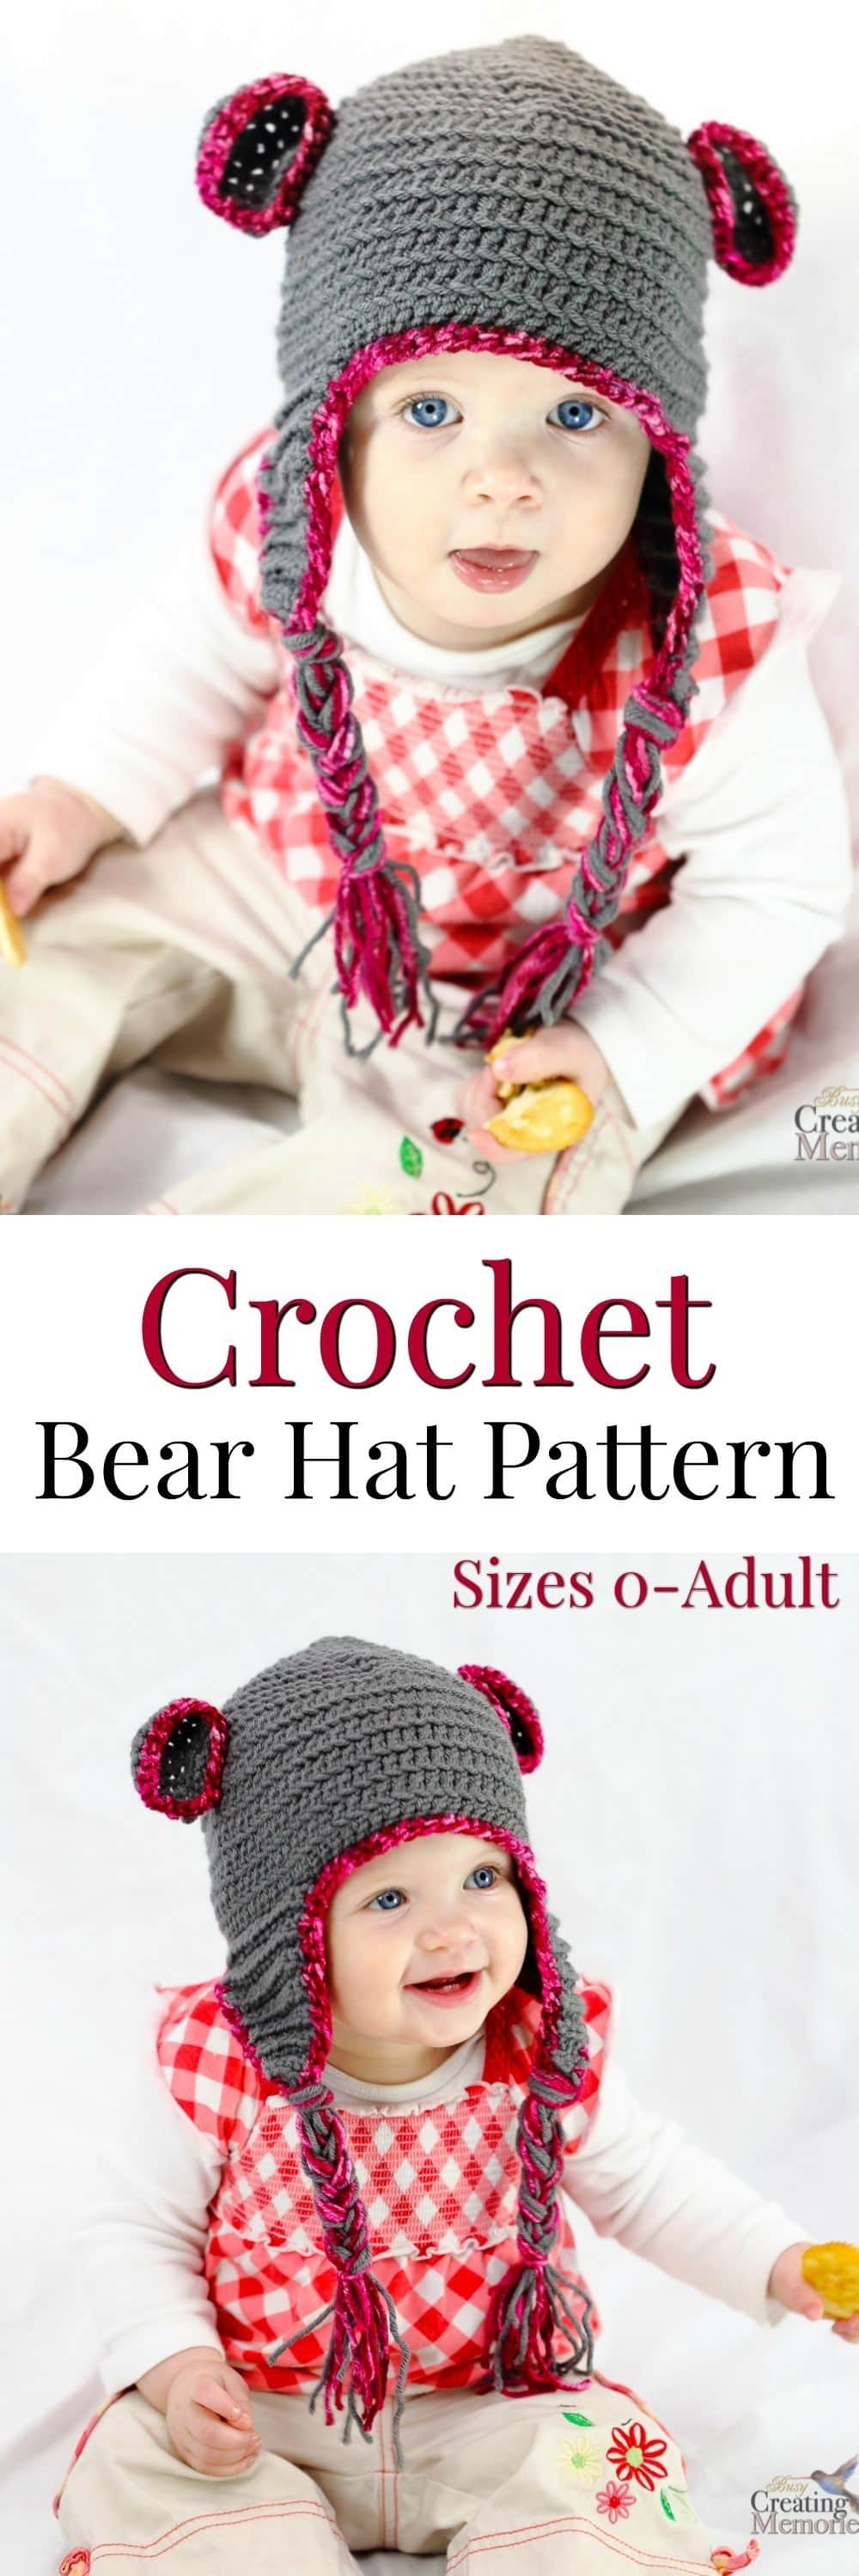 A comfortable and cute Teddy Bear crochet baby hat with earflaps. Pattern includes size variations for newborn through adult + gift basket ideas for a new mom